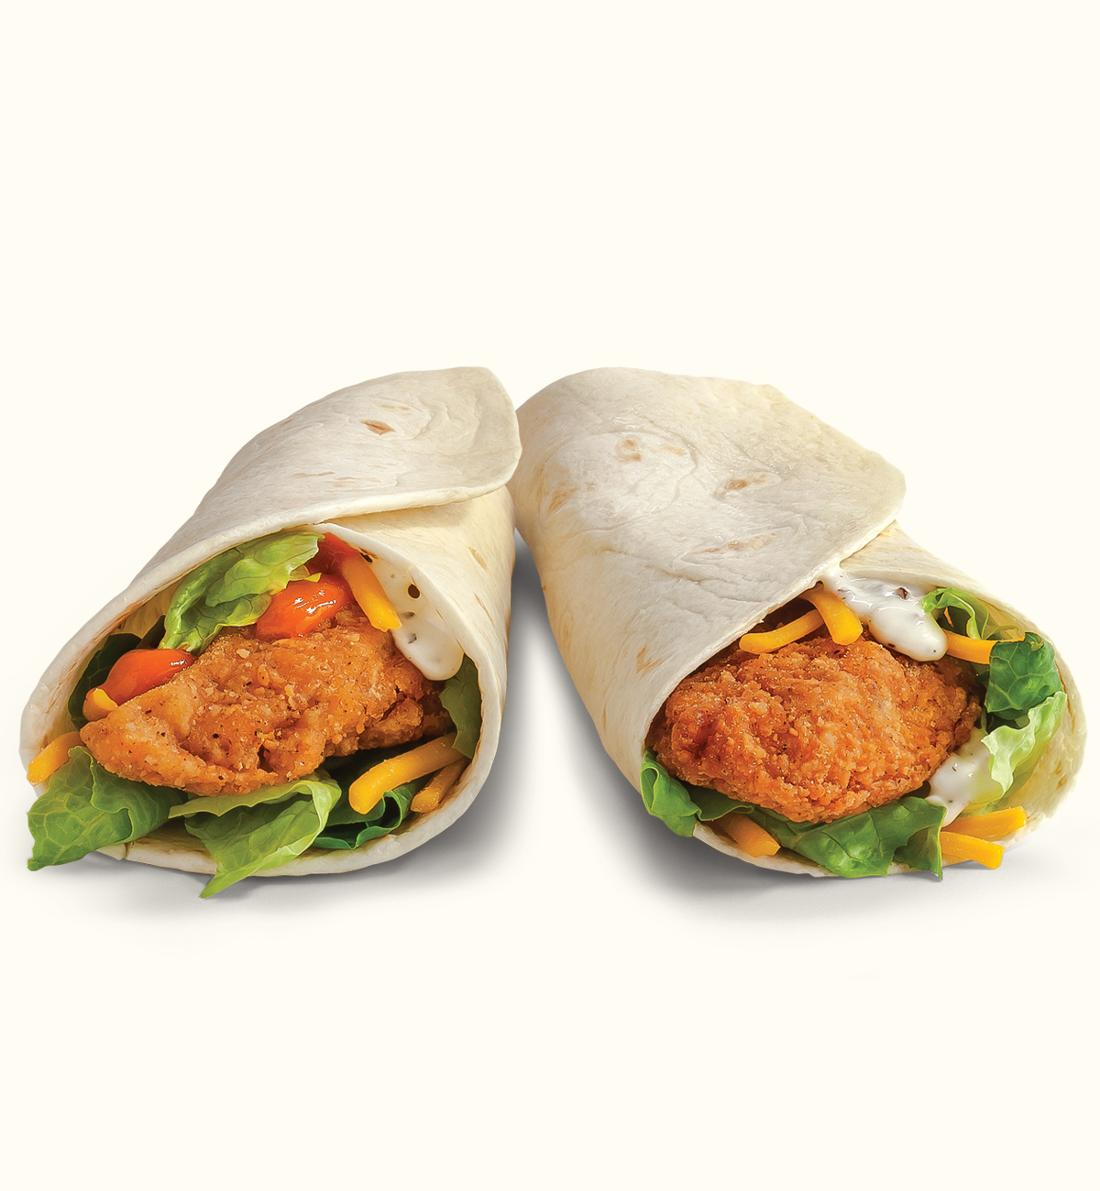 Jr. Chicken Wraps